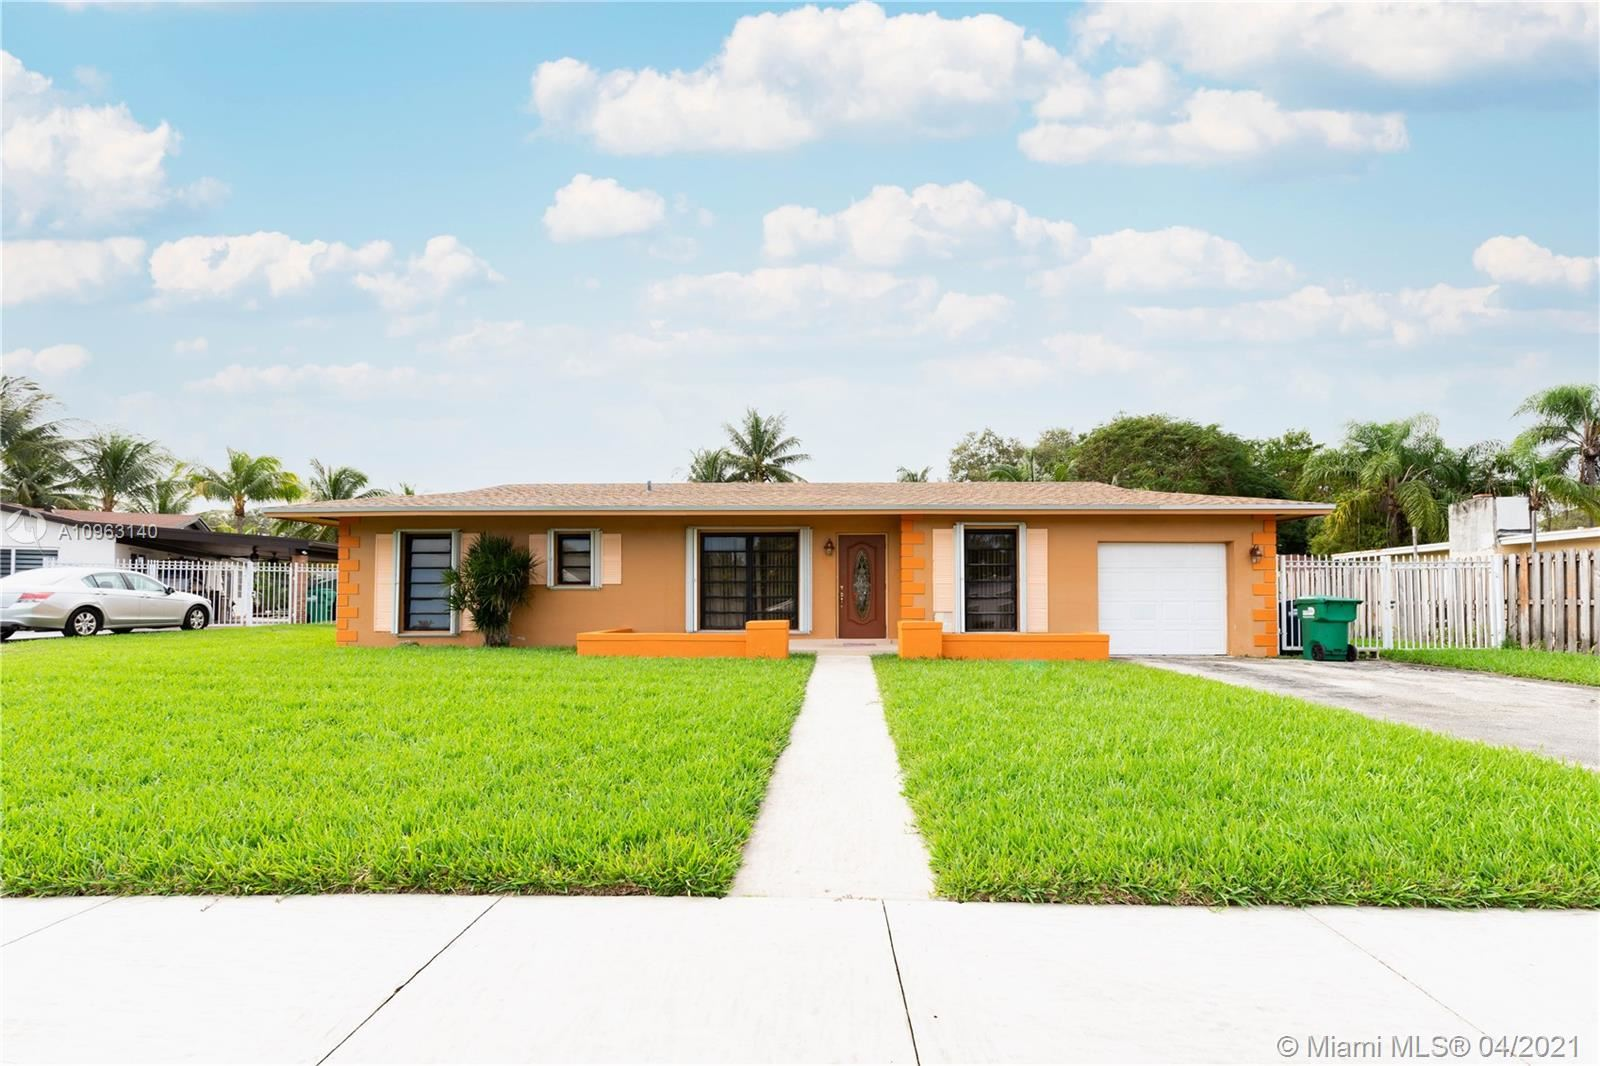 18122 SW 89th Ct, Palmetto Bay, FL 33157 - #: A10963140